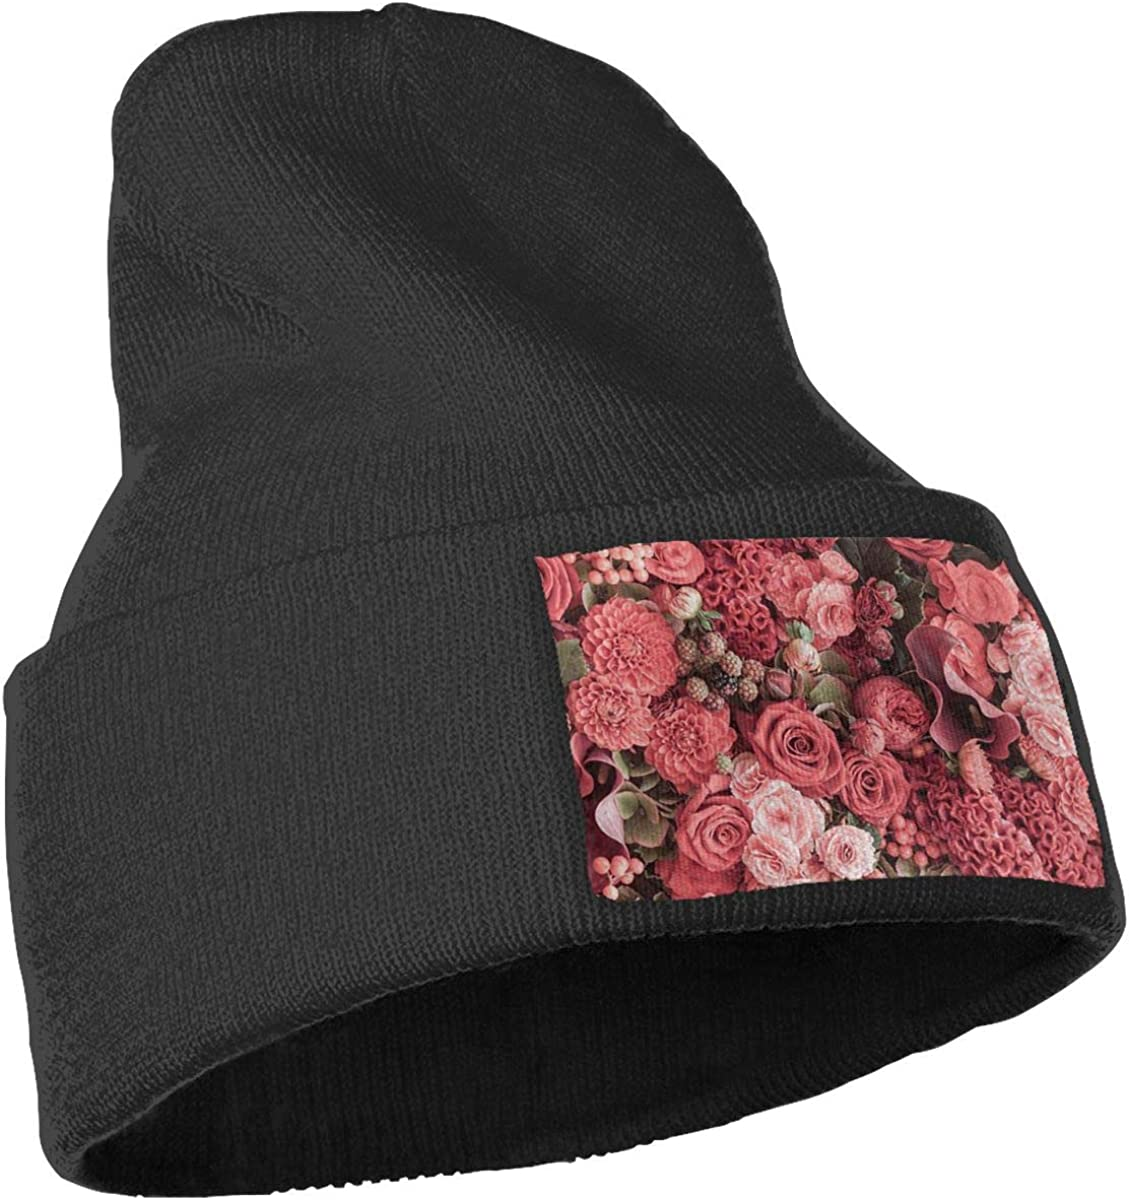 Yubb7E Pattern Warm Knit Winter Solid Beanie Hat Unisex Skull Cap